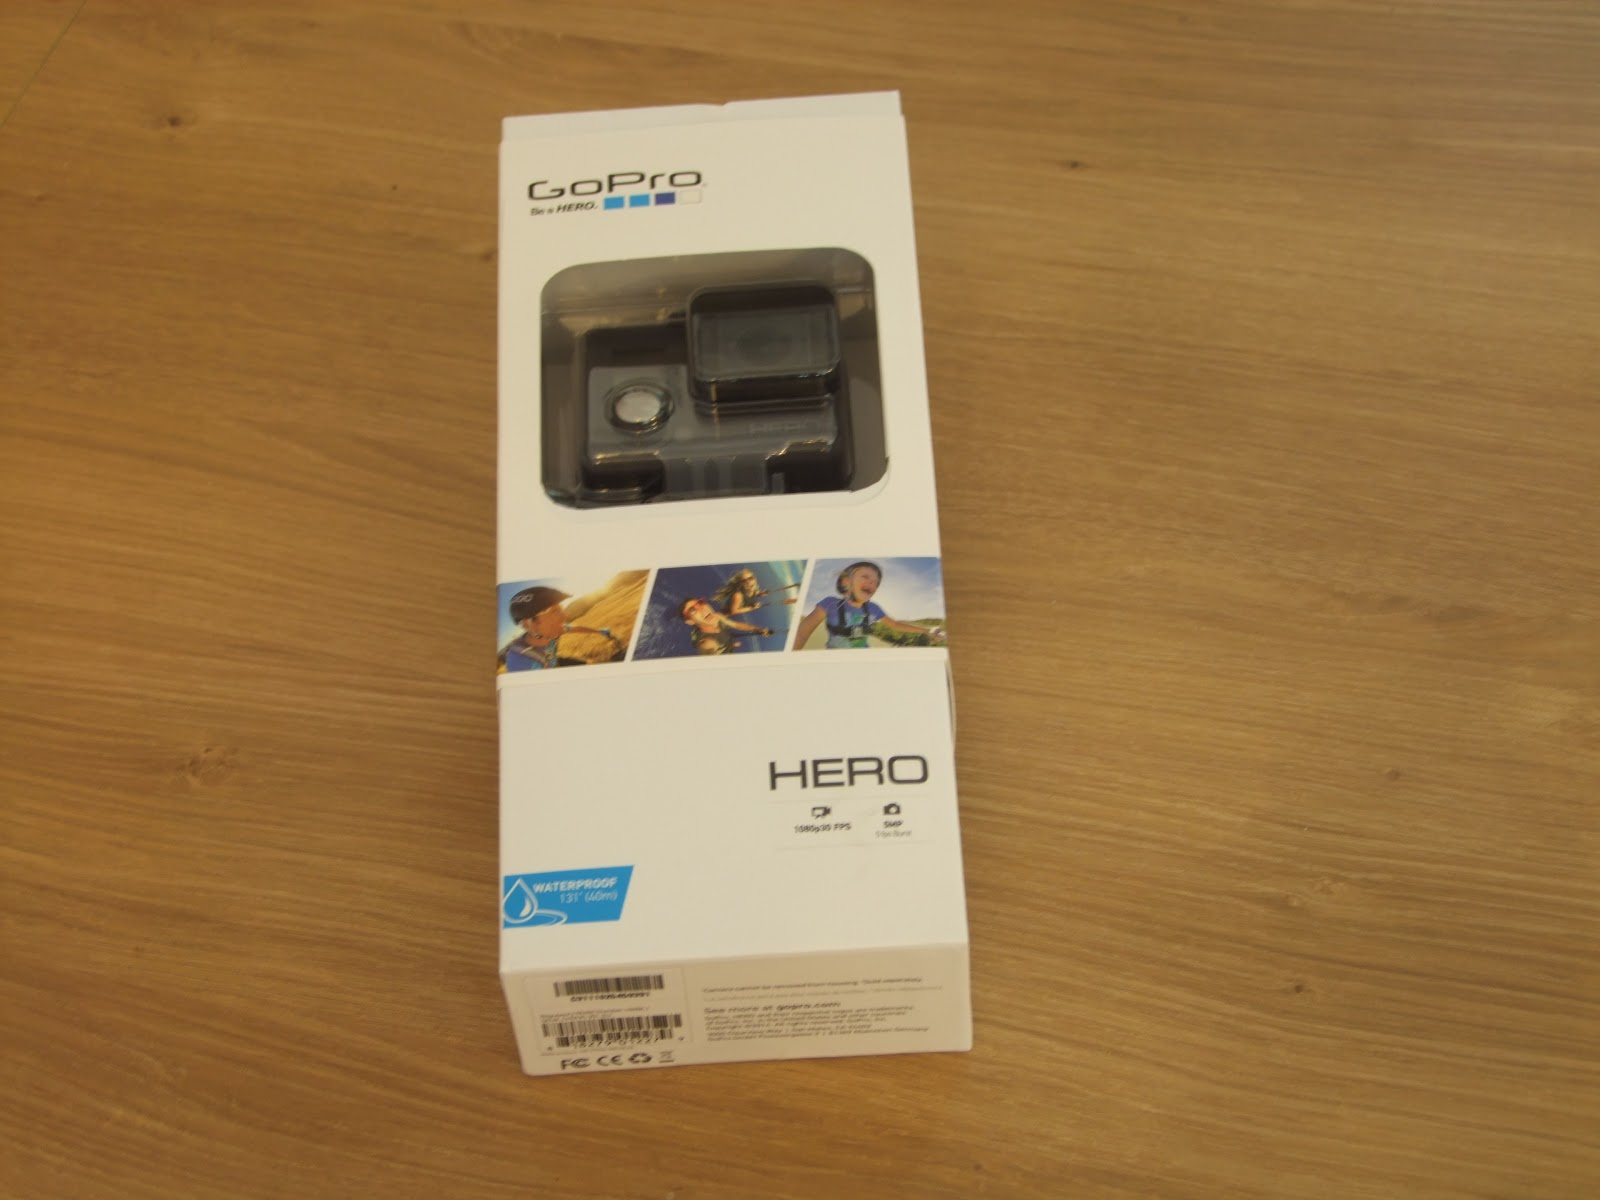 gopro hero unboxing and setup of 3 wiring diagrams. Black Bedroom Furniture Sets. Home Design Ideas